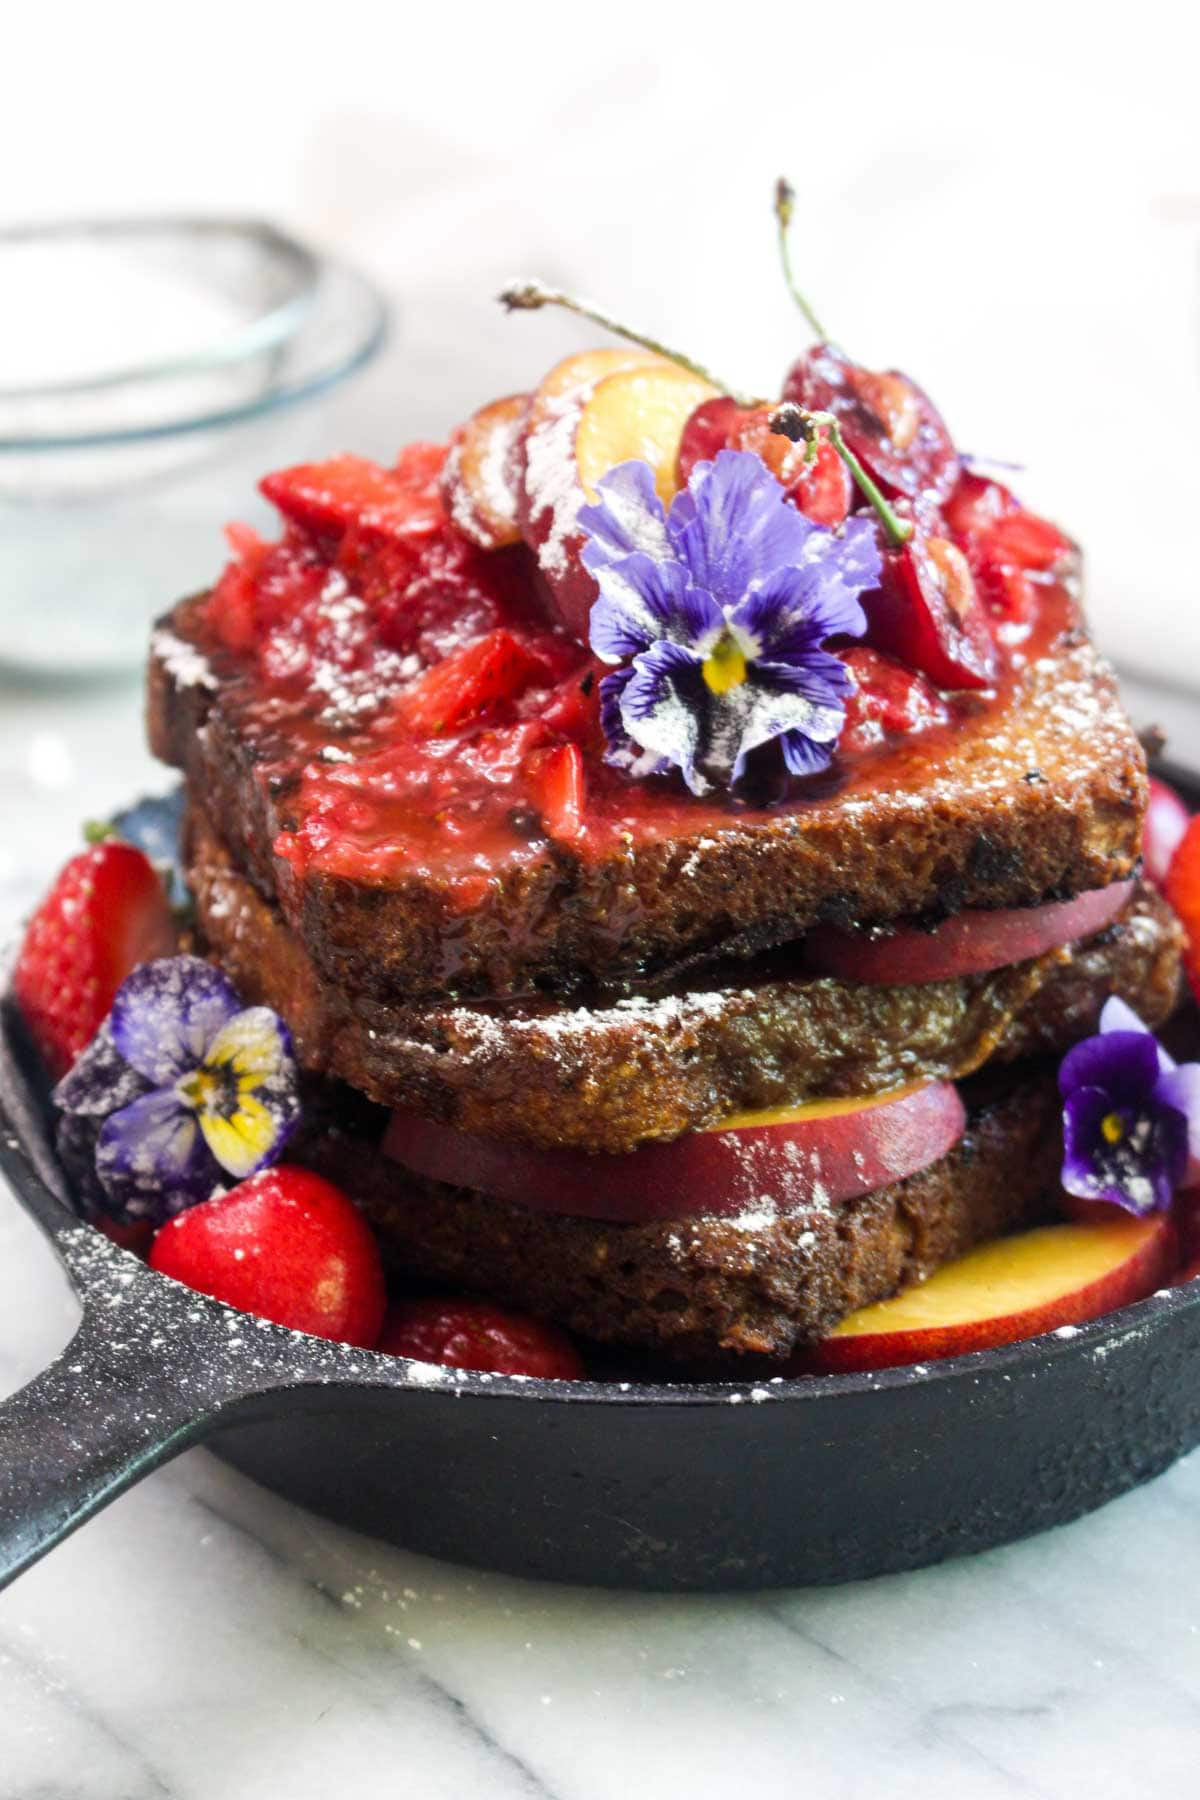 A closeup of a cast iron skillet with a stack of french toast with strawberry sauce, flowers, powdered sugar, and peaches.